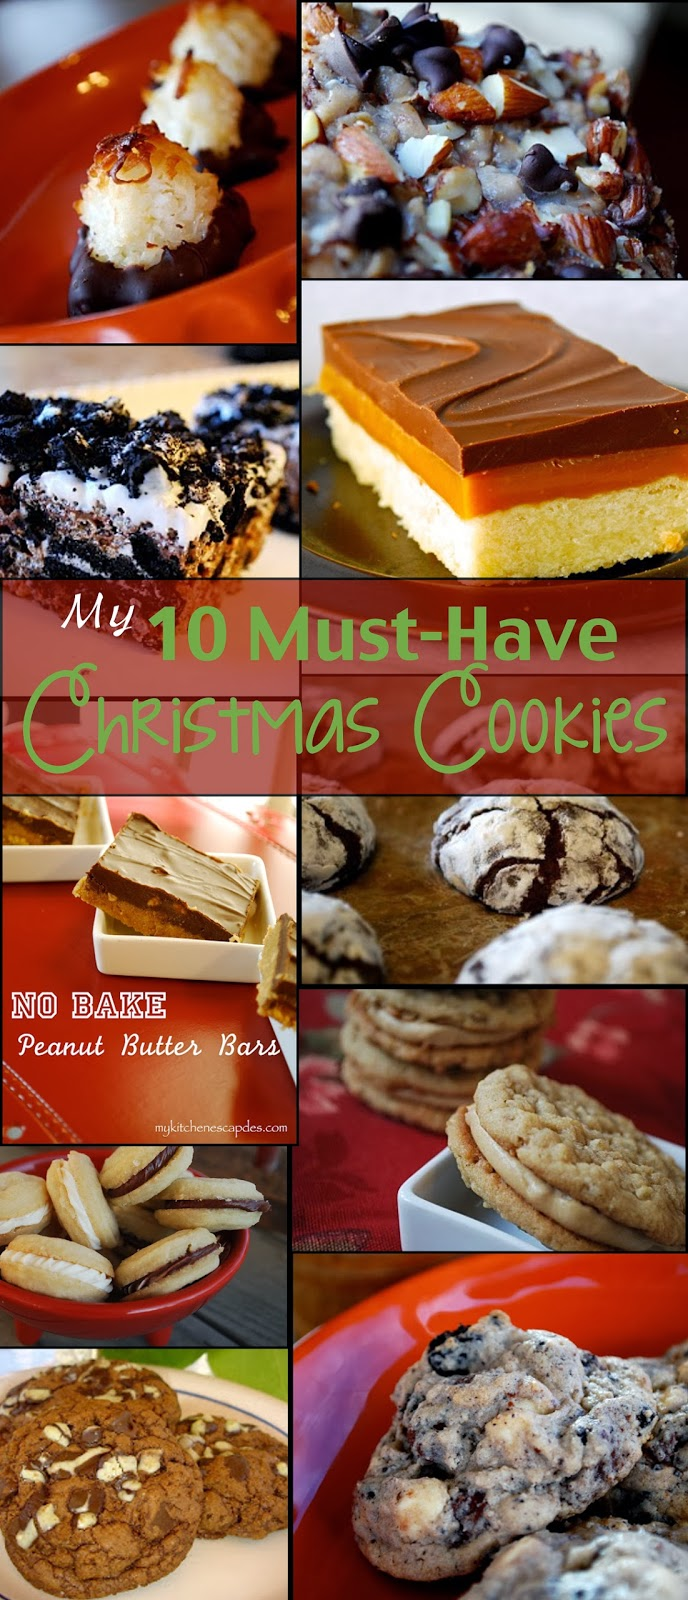 My 10 Must Have Christmas Cookie Recipes